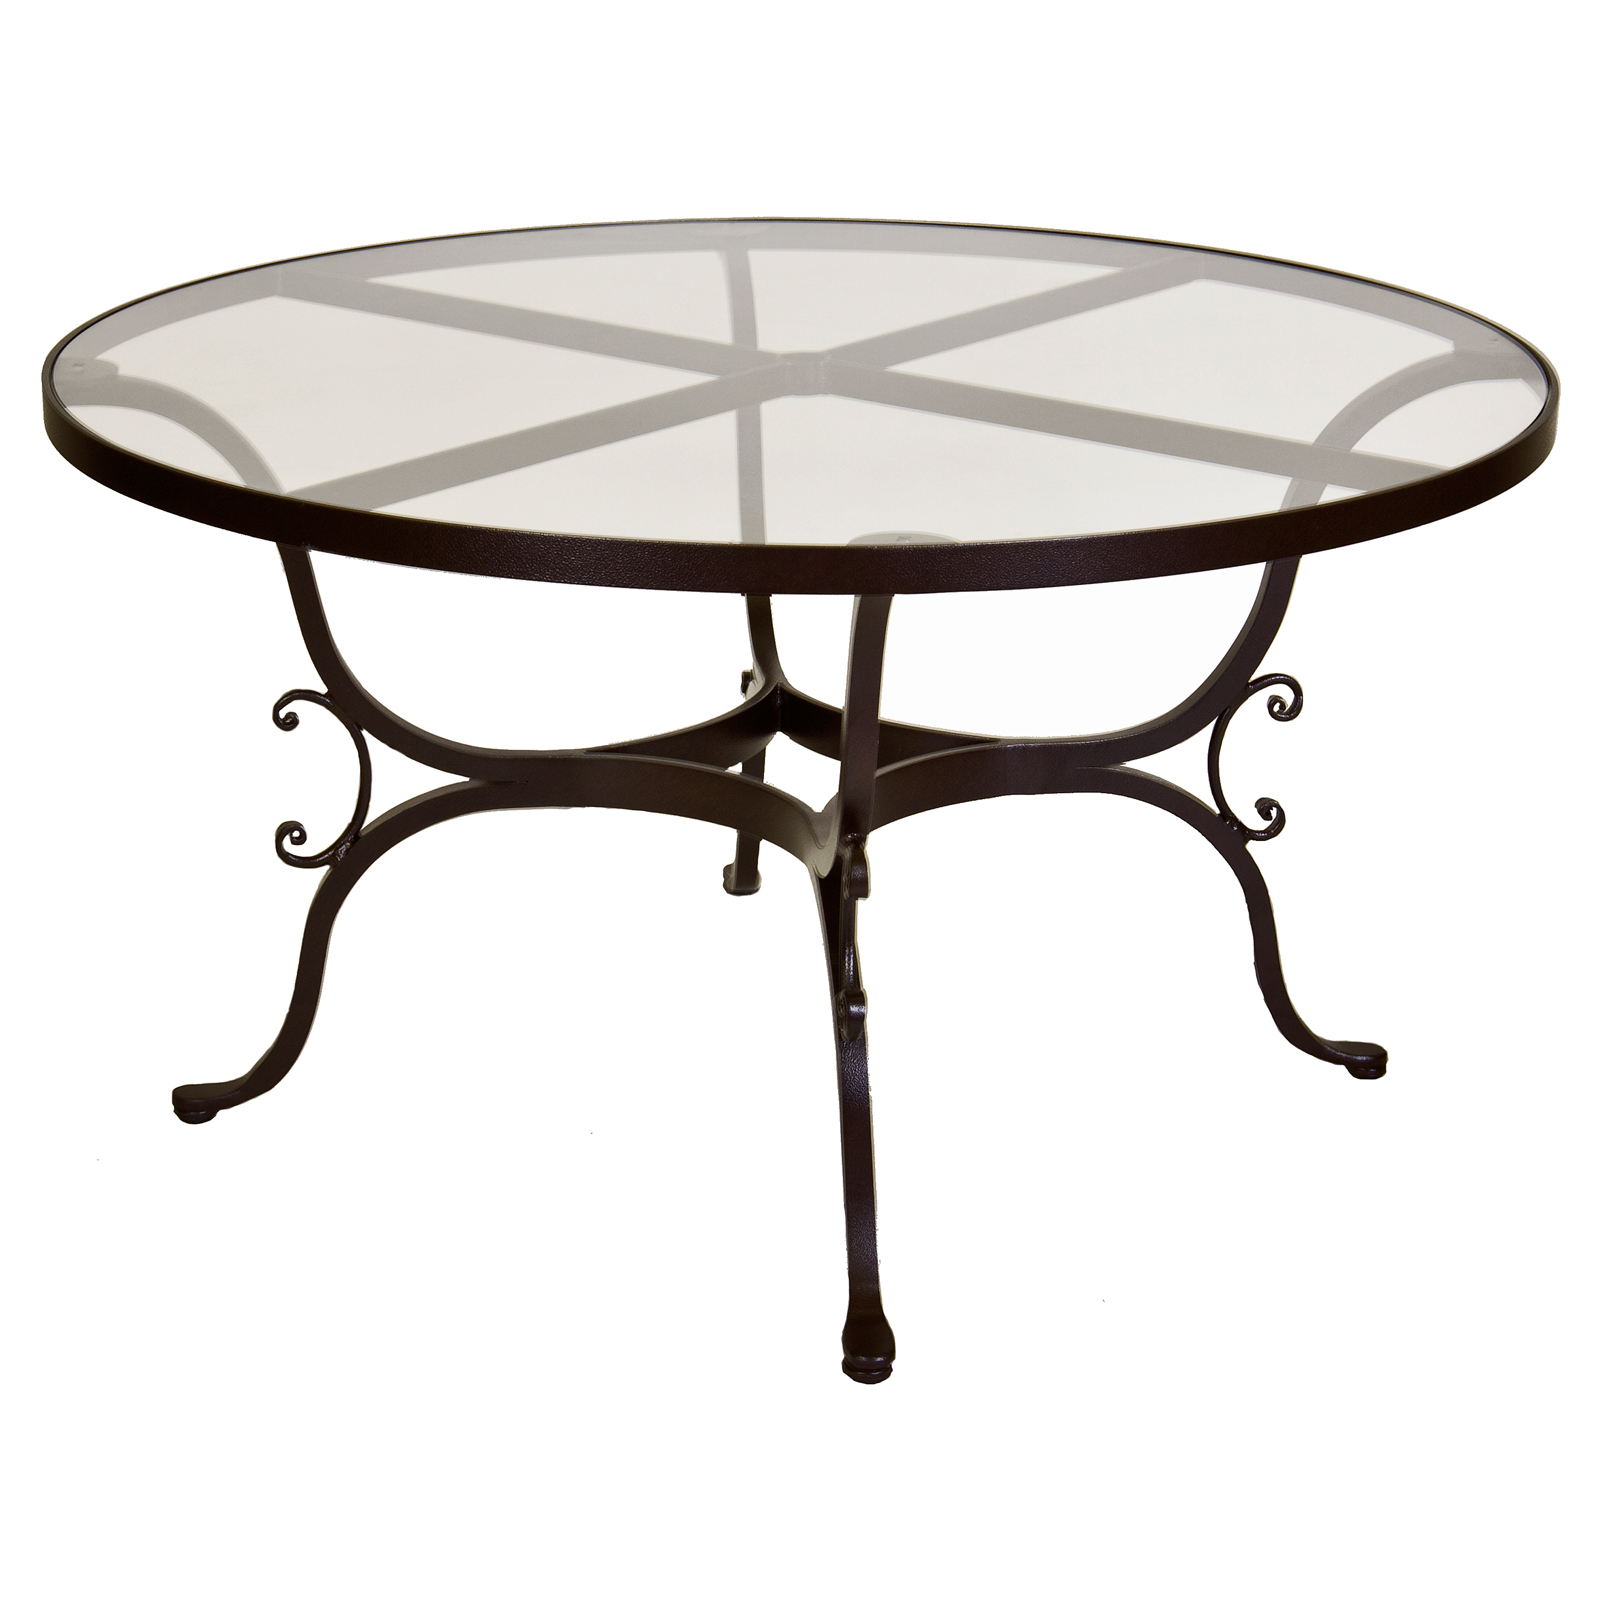 Great Round Glass Patio Table  Patio Design #376. Cheap Home Office Desks. Dental Lab Desk. Oval Drawer Pulls. Letter Tray With Drawer. Saarinen Dining Table. Officeworks Desk Mat. Round Patio Table. Tech Desk Accessories